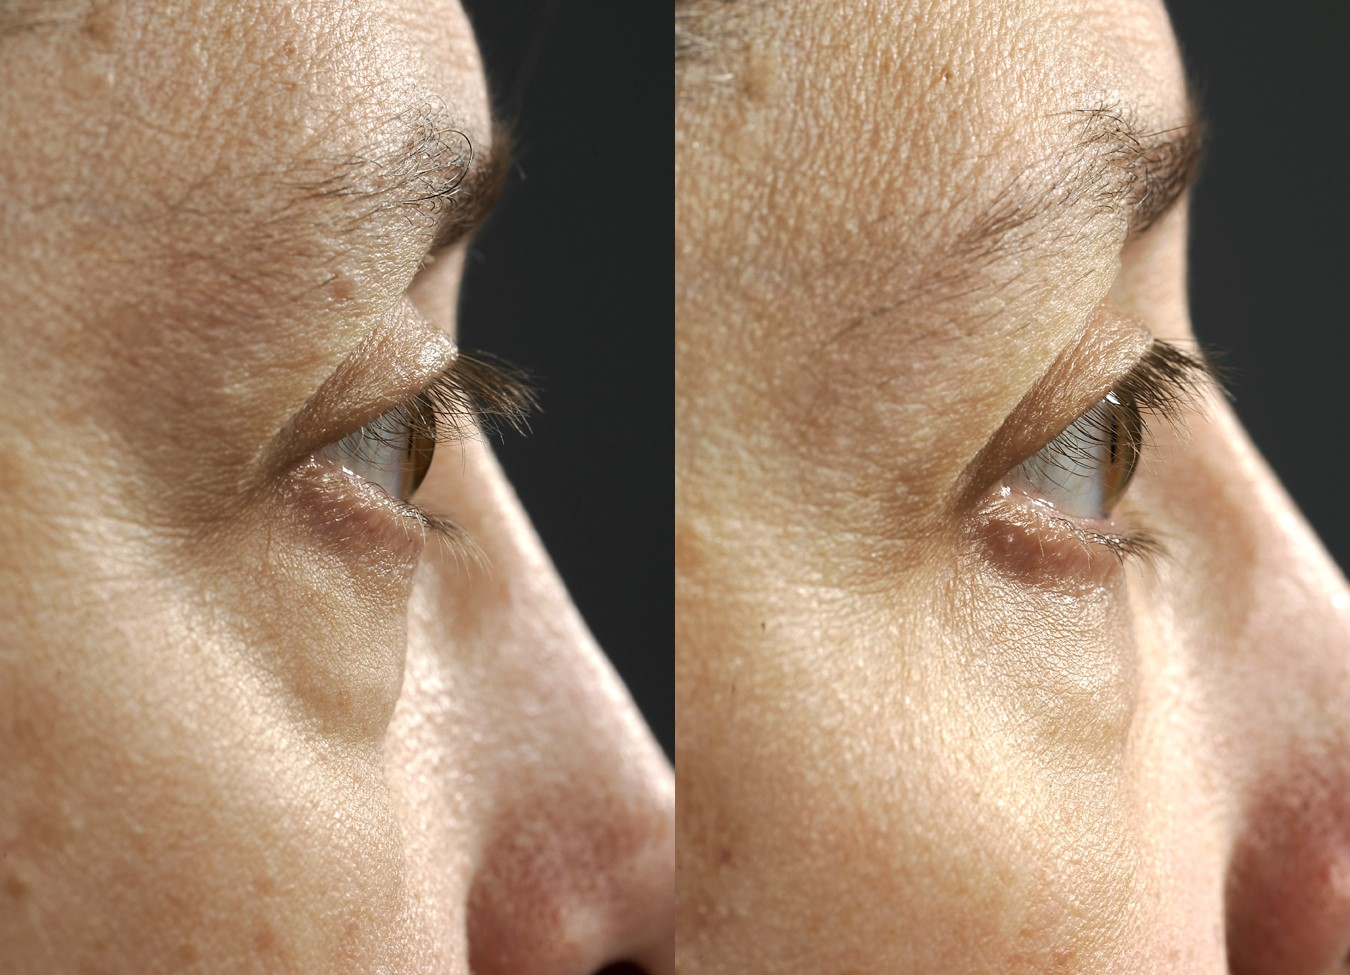 Before & 5 months after transconjunctival lower blepharoplasty (lower eye lift with hidden incisions)